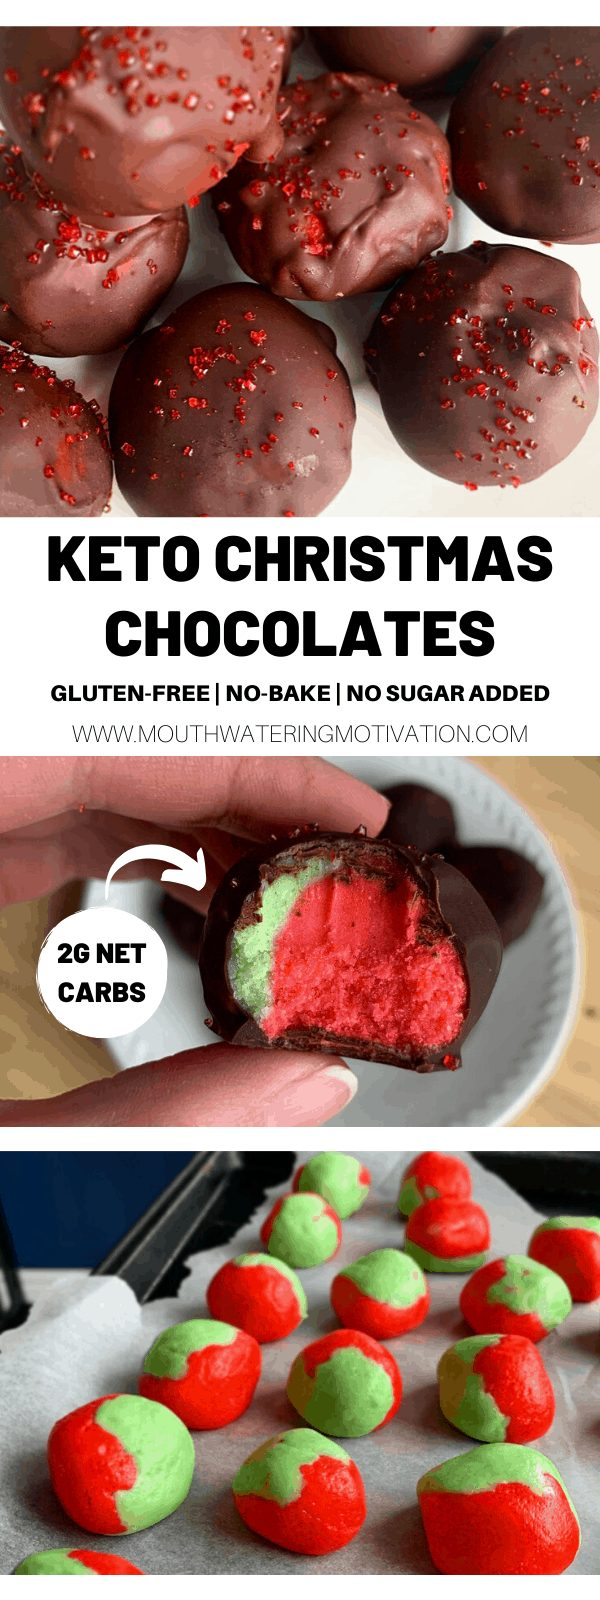 KETO CHRISTMAS CHOCOLATES (1).png